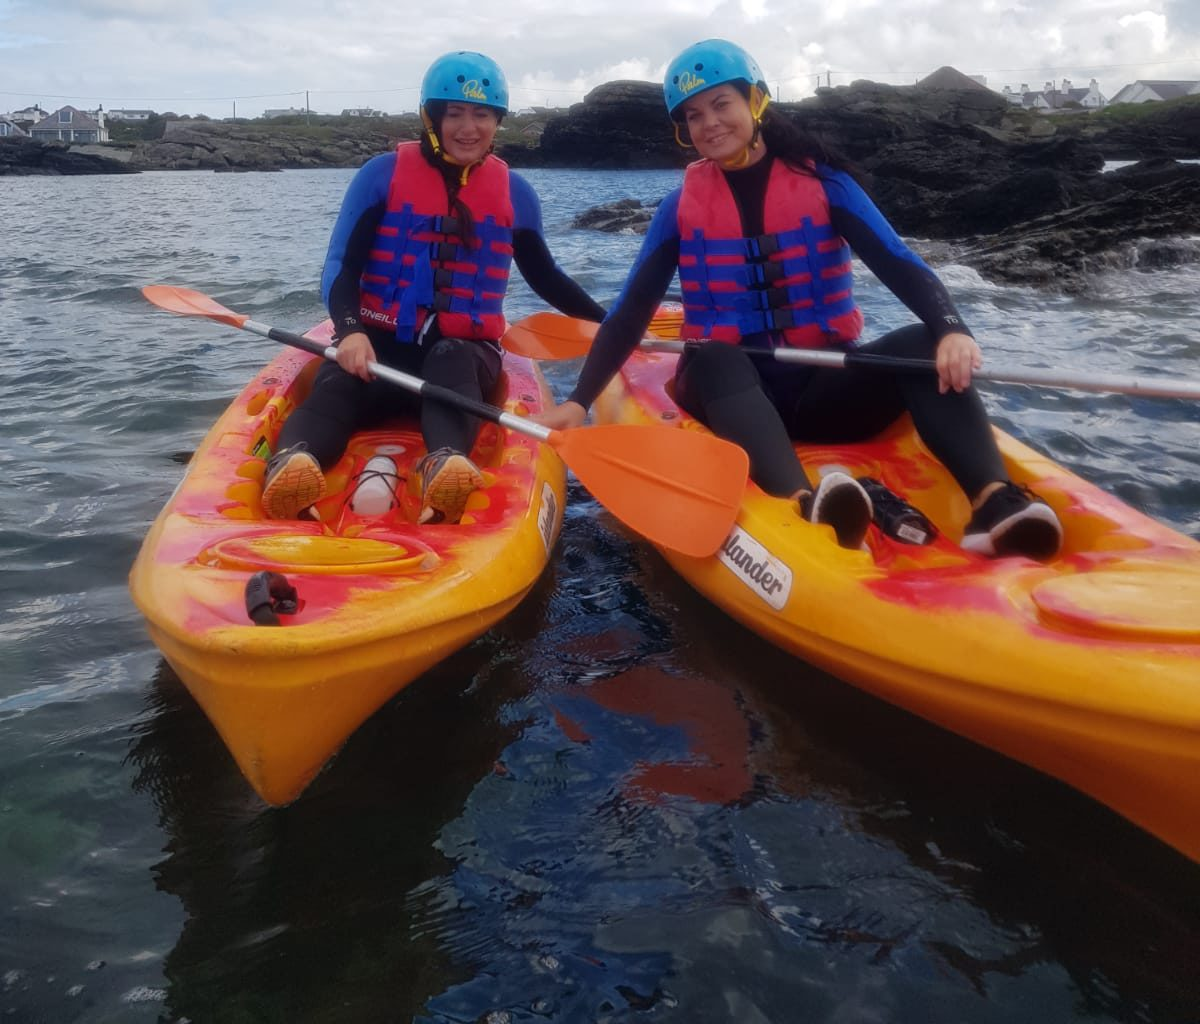 Anglesey Kayaking Experience: Kayak in Wales